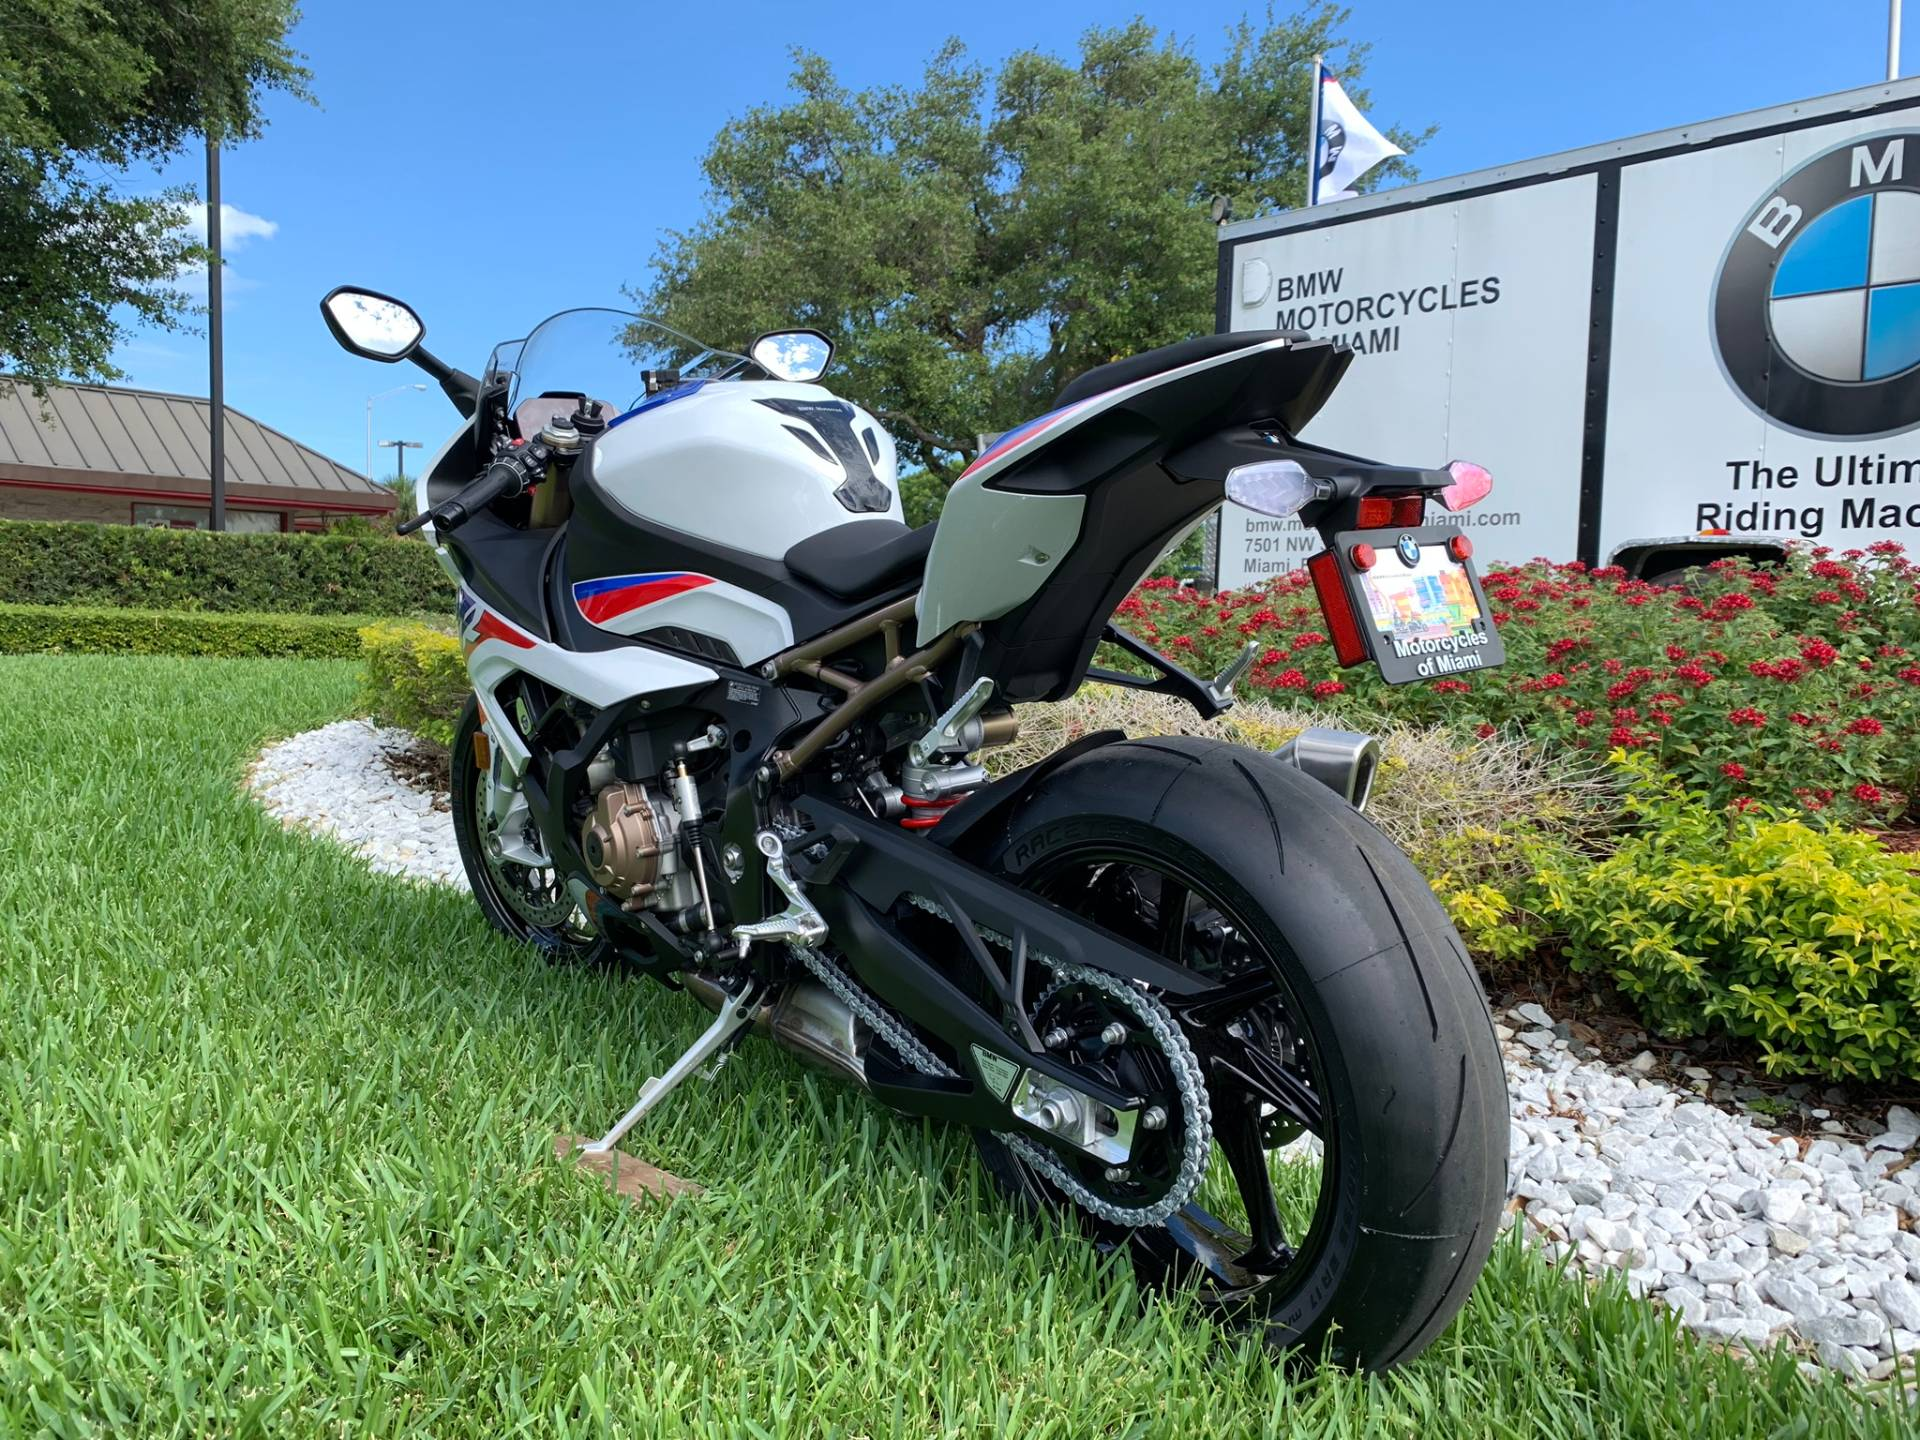 New 2020 BMW S 1000 RR for sale, BMW S 1000RR for sale, BMW Motorcycle S1000RR, new BMW RR, Sport. BMW Motorcycles of Miami, Motorcycles of Miami, Motorcycles Miami, New Motorcycles, Used Motorcycles, pre-owned. #BMWMotorcyclesOfMiami #MotorcyclesOfMiami #MotorcyclesMiami - Photo 10